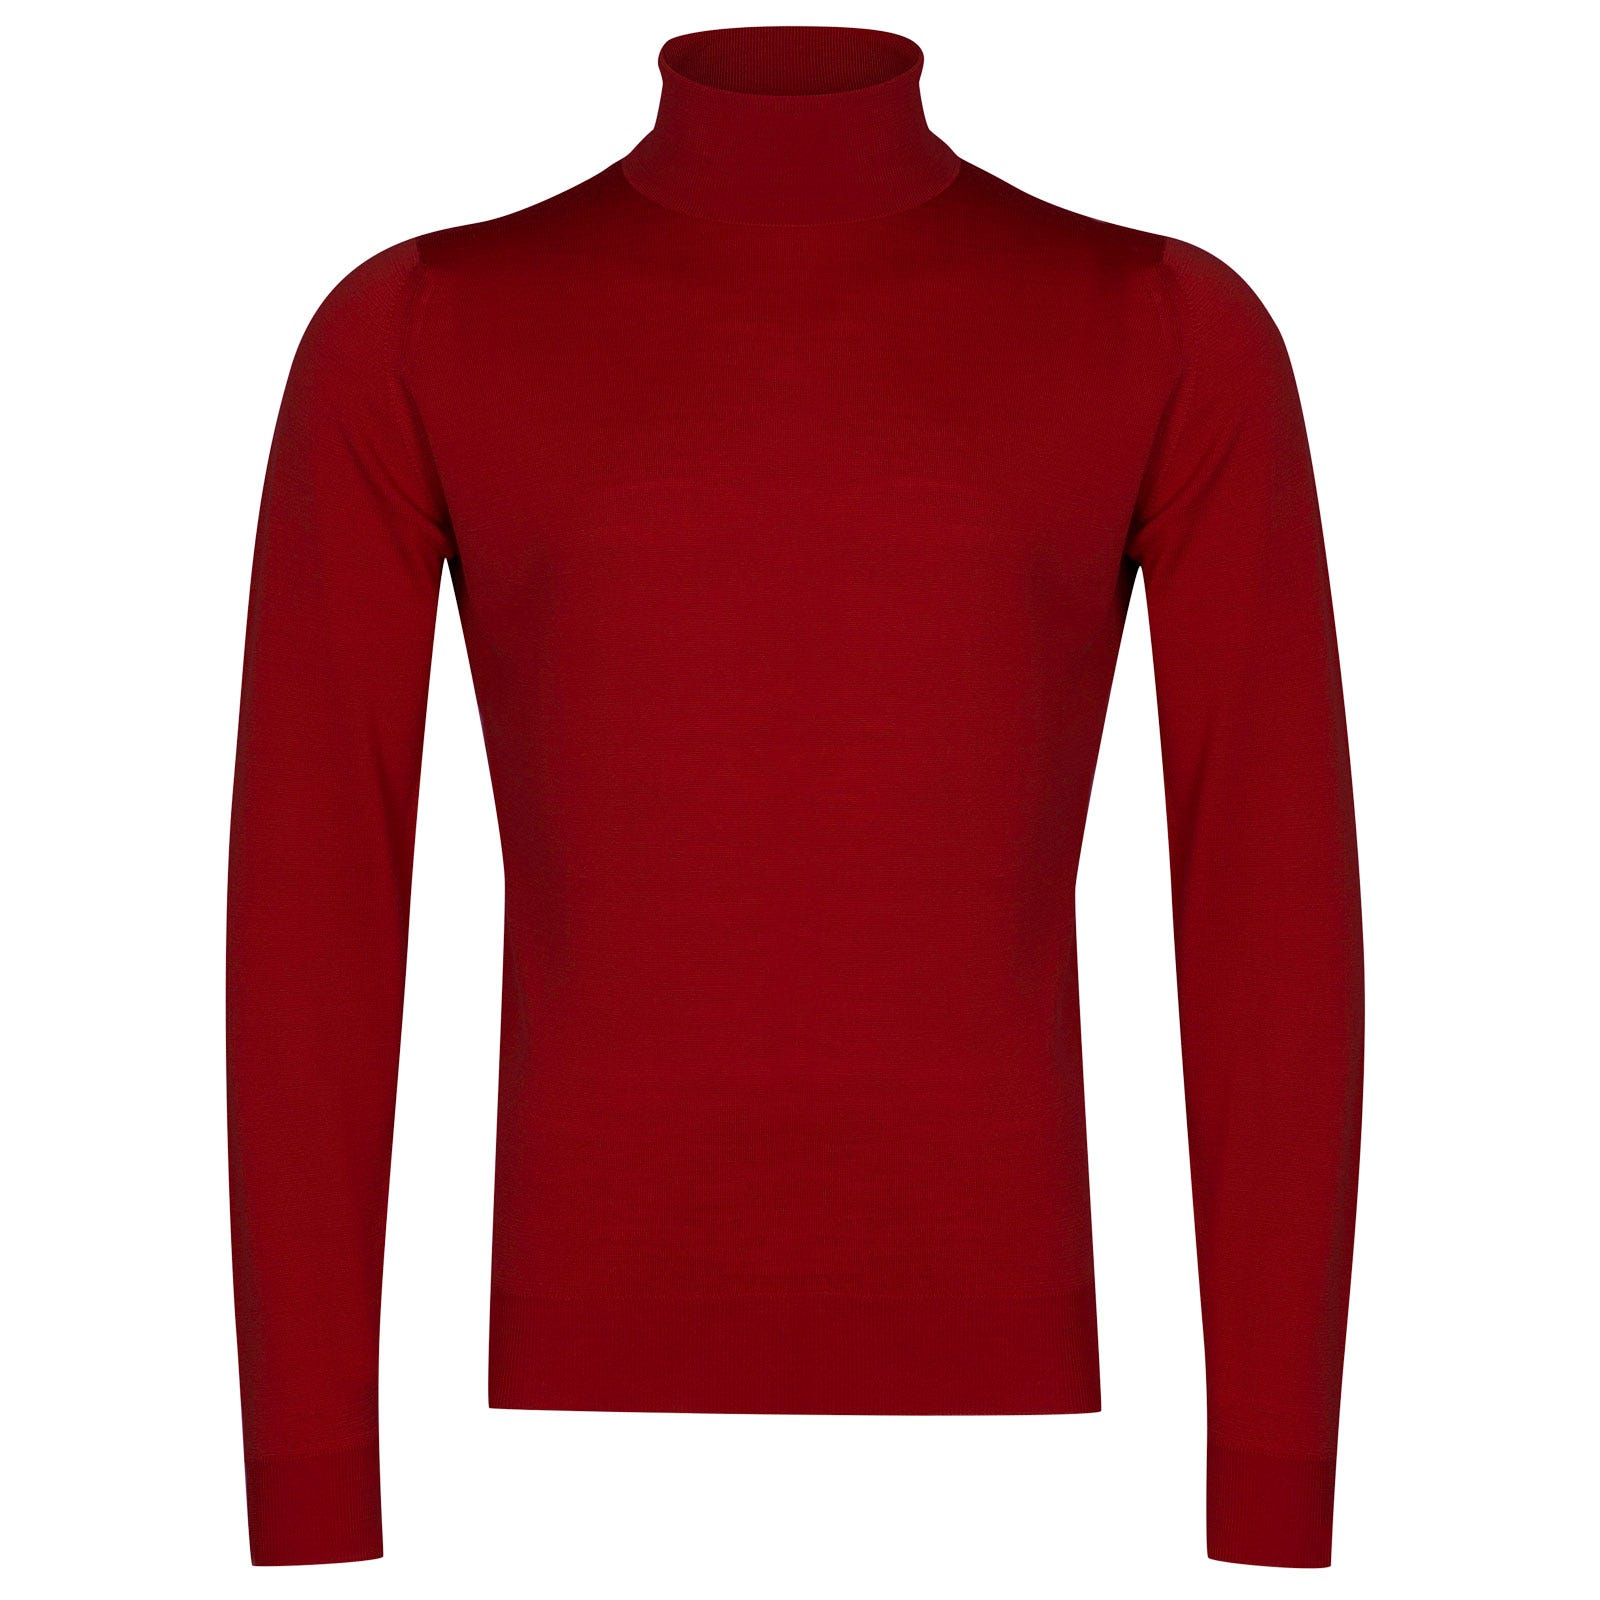 John Smedley Cherwell Merino Wool Pullover in Dandy Red-XL